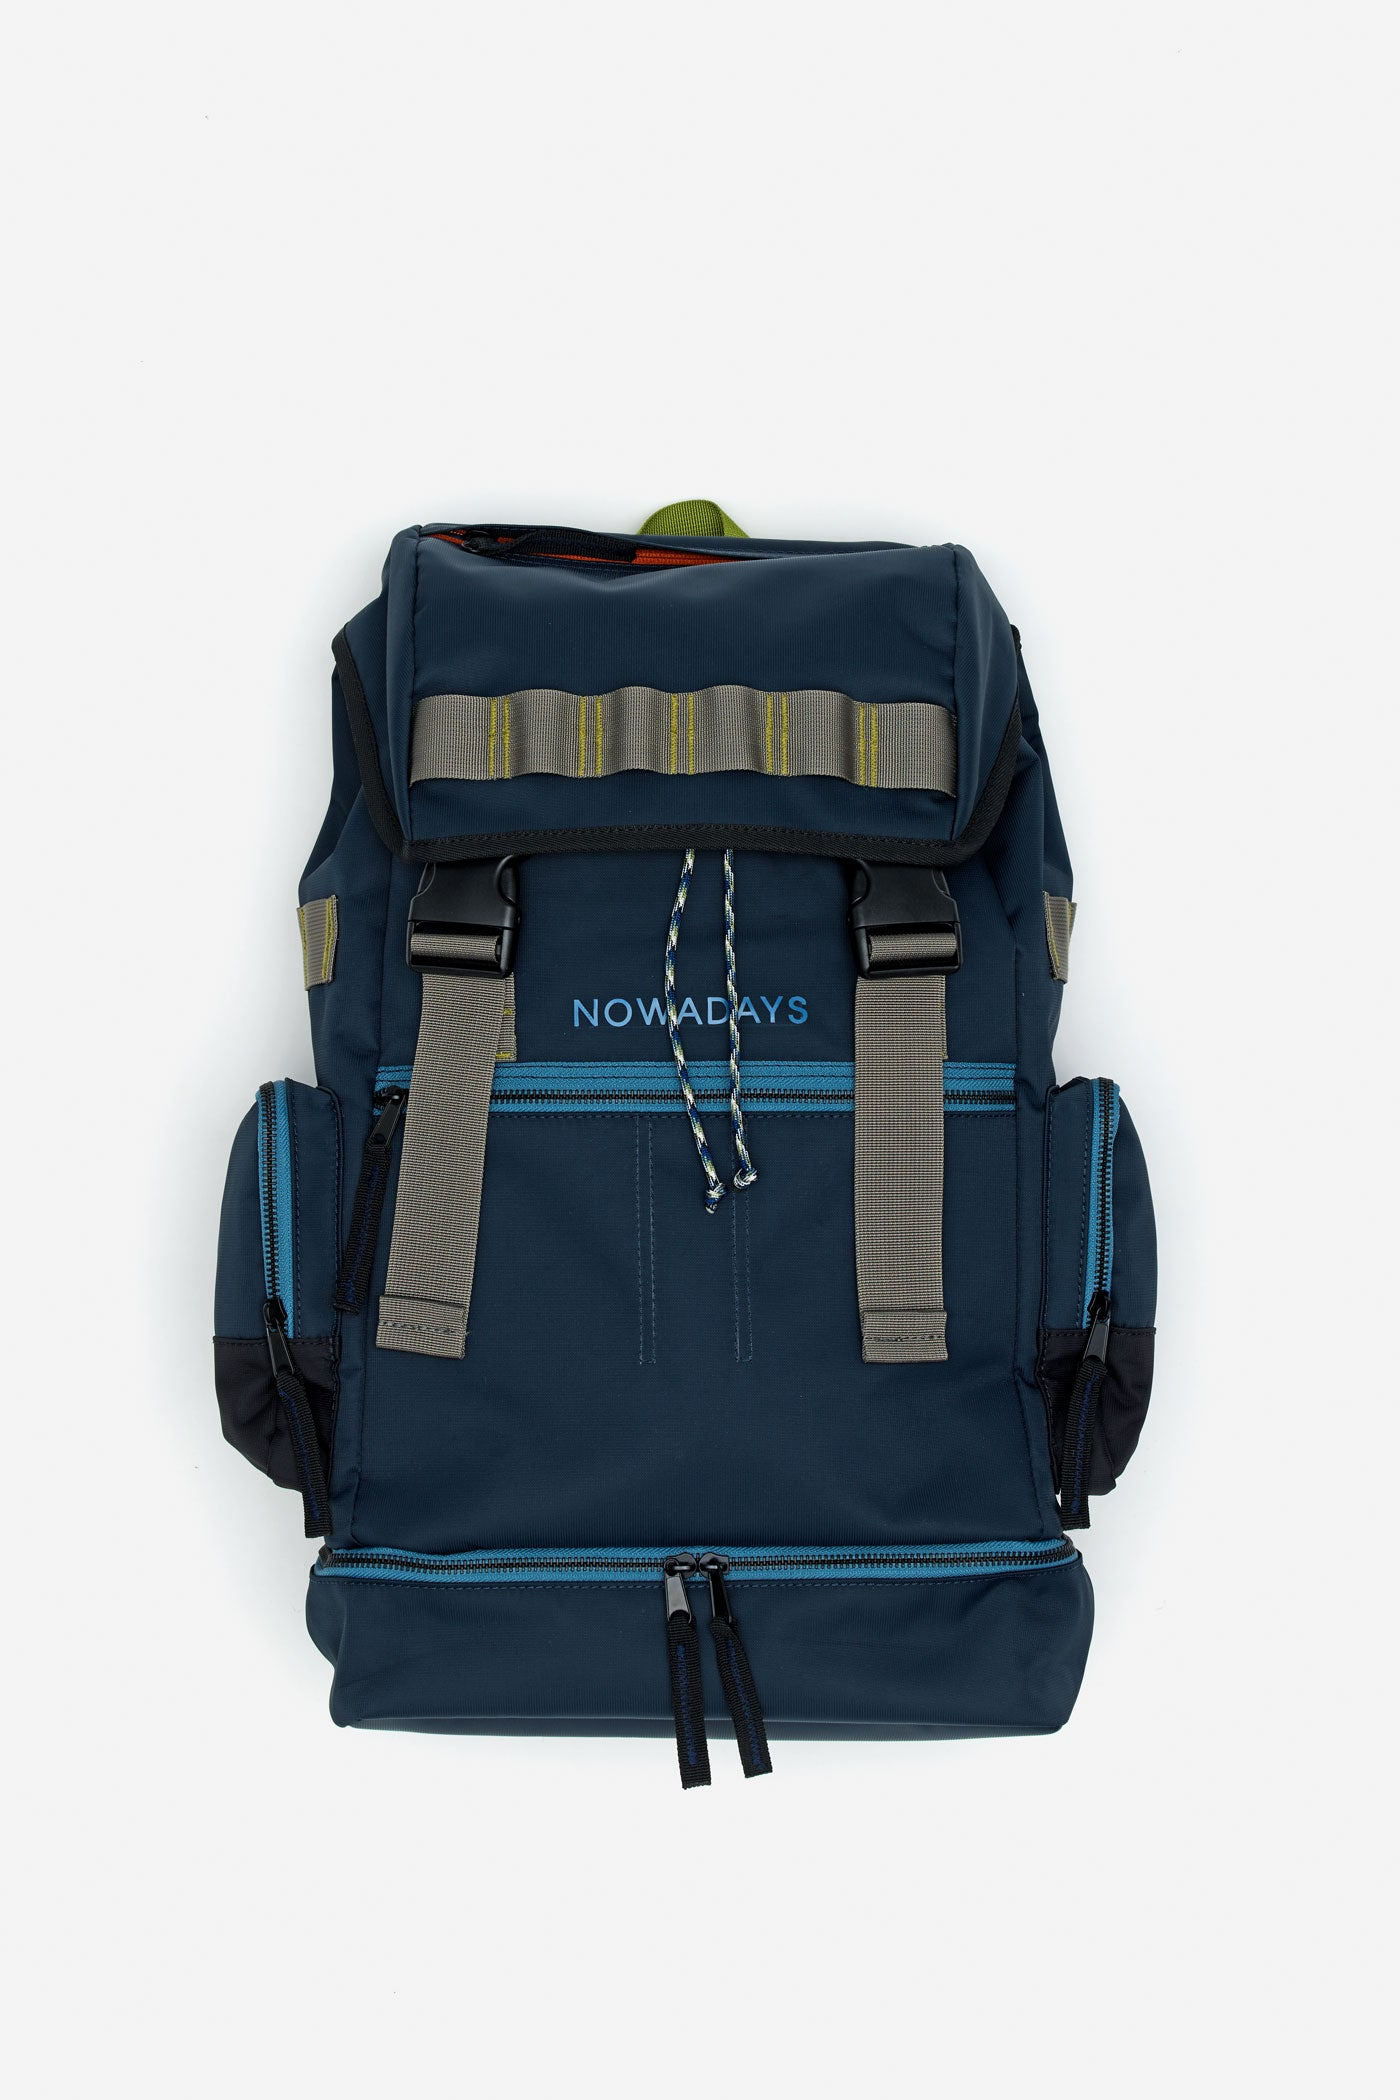 Backpack night sky